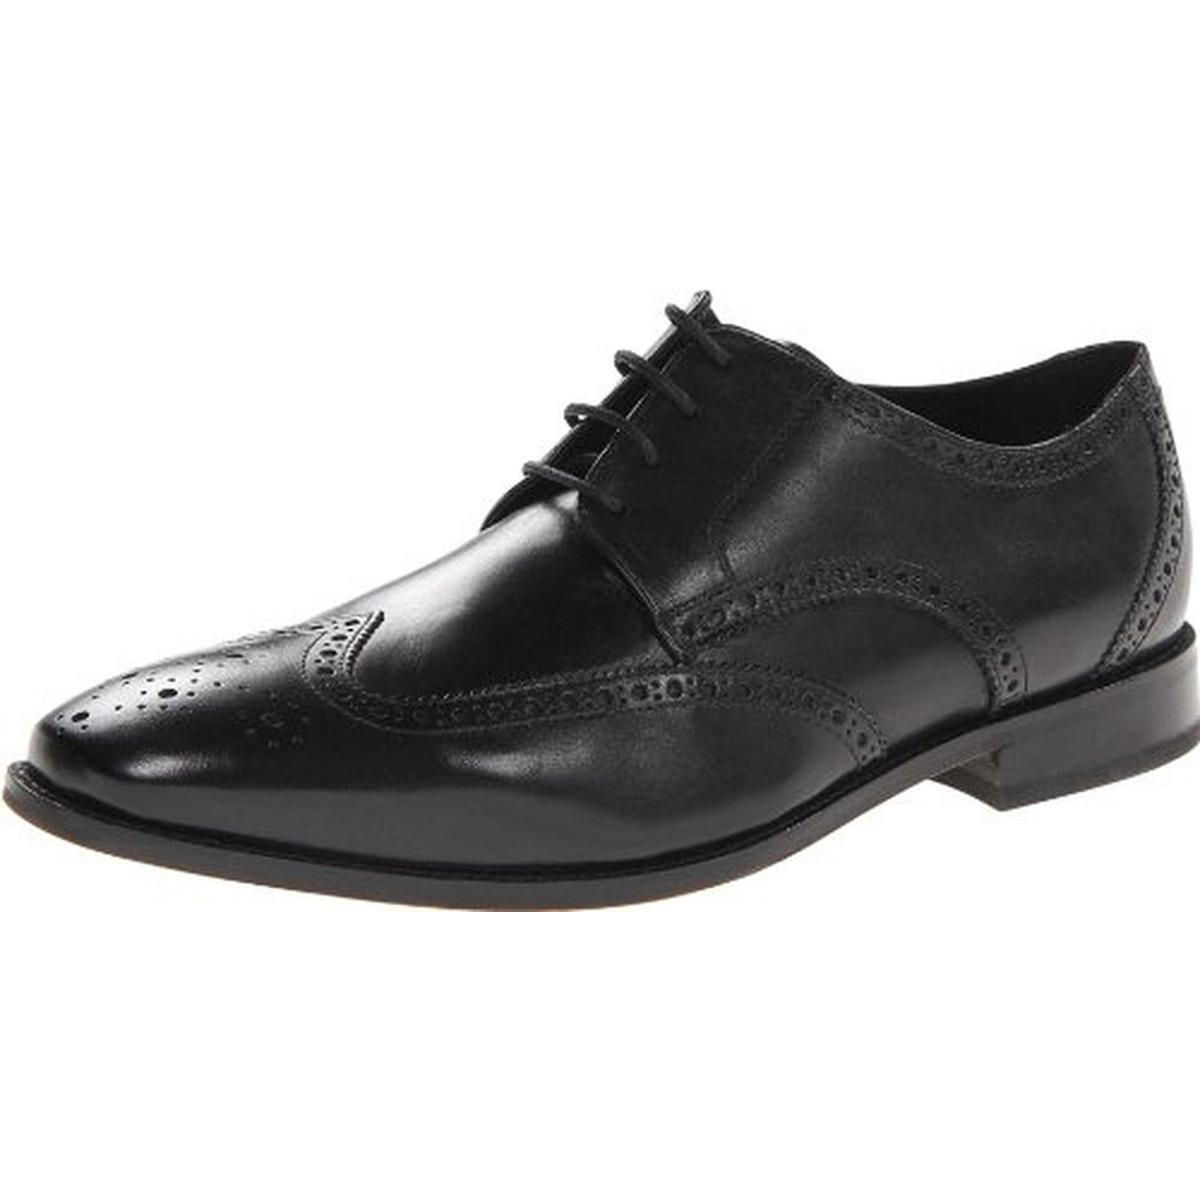 Florsheim Mens Castellano Wing Leather Wing Tip Derby Shoes by Florsheim